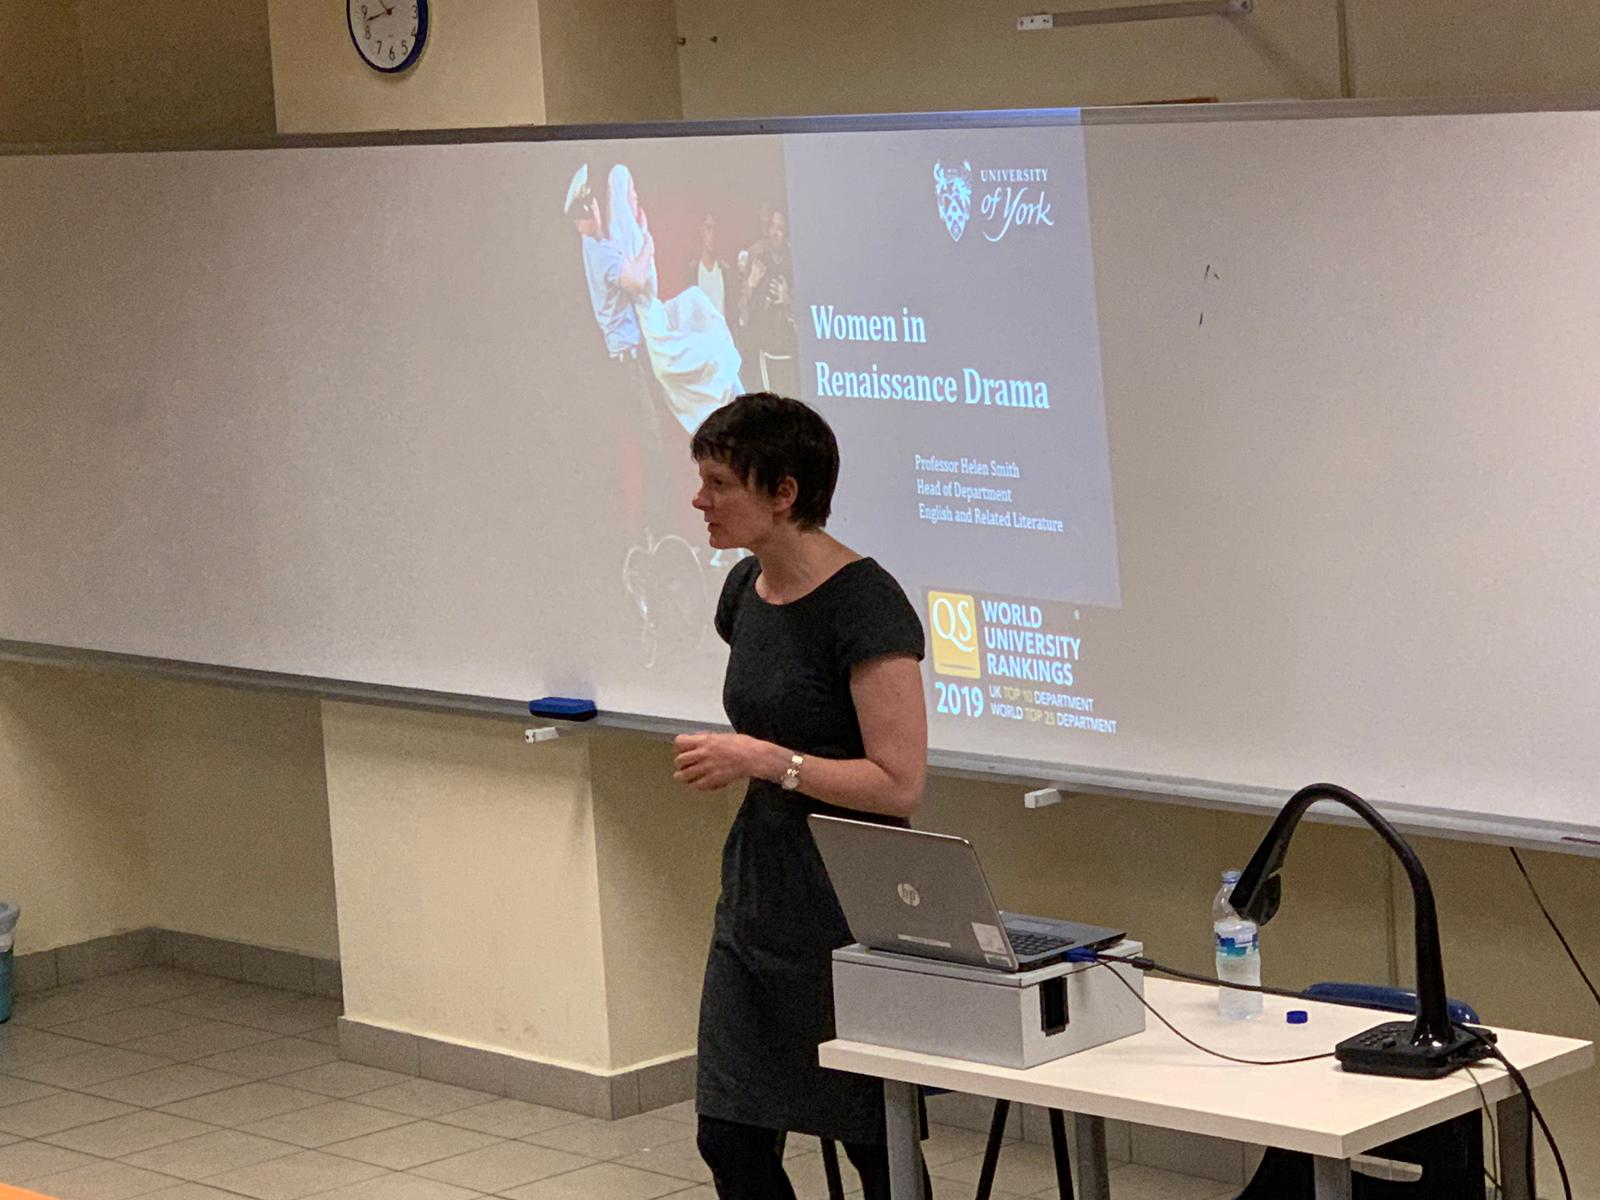 WhatsApp Image 2019-05-08 at 10.25.32.jpeg